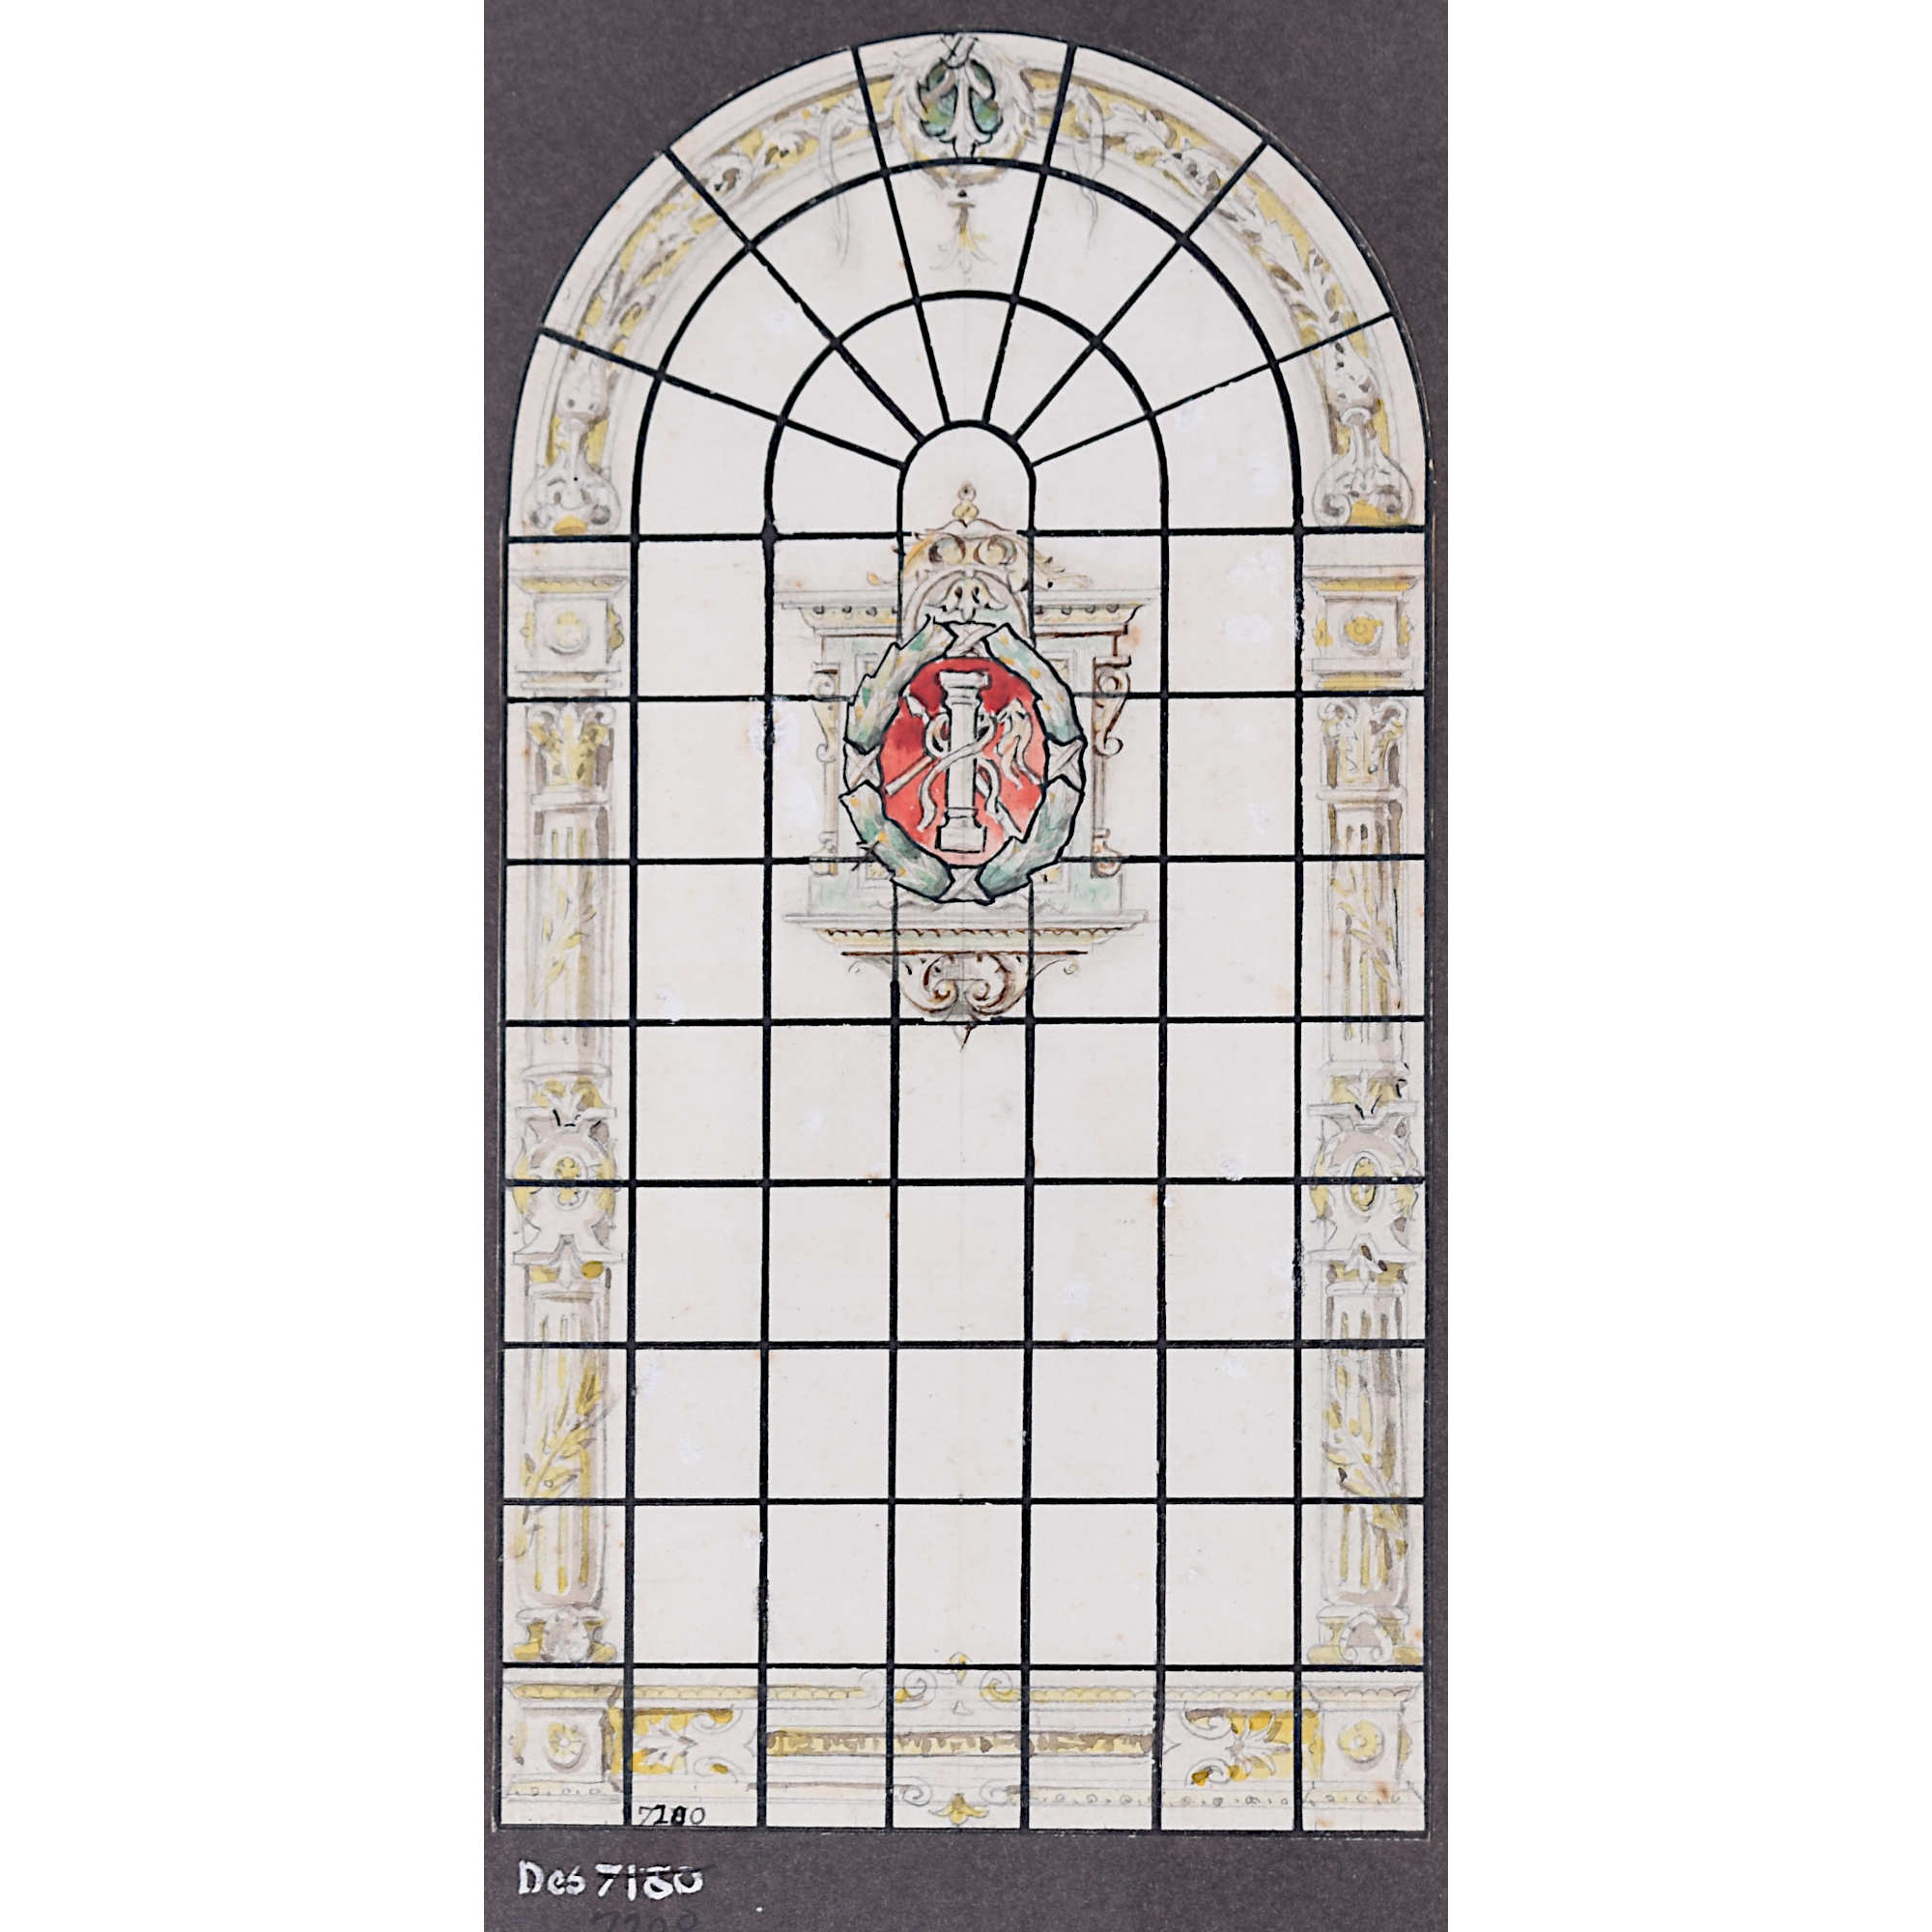 Florence Camm Stained Glass Passion Window Design